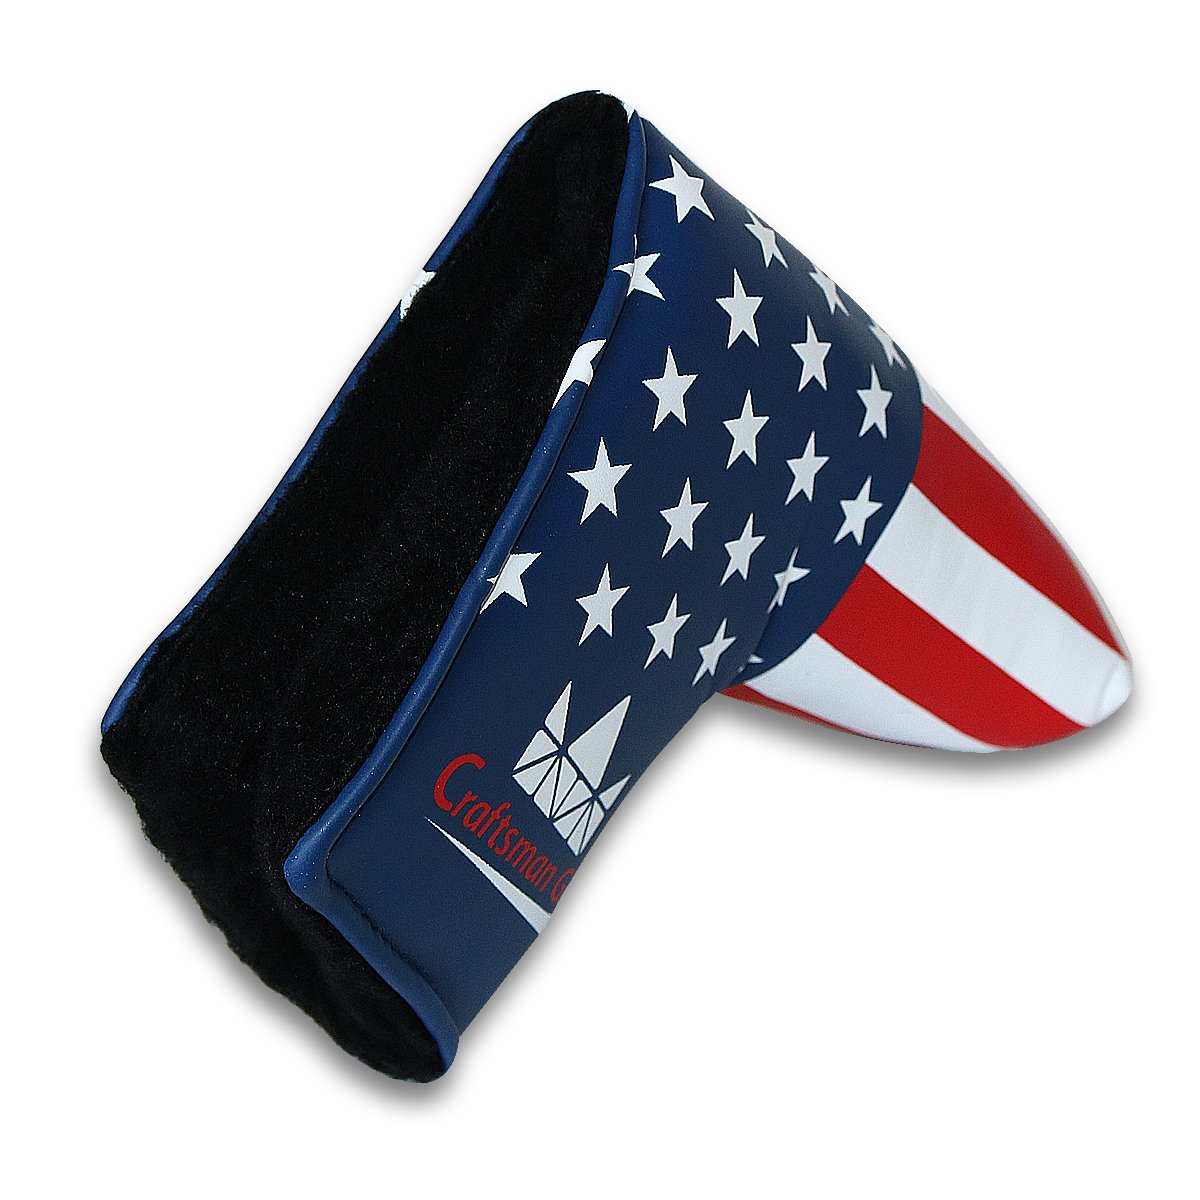 3fe7151d7e95 Craftsman Golf USA FLAG Patriotic Theme Golf Putter Cover Headcover Club  Protector For Scotty Cameron Taylormade Odyssey Blade